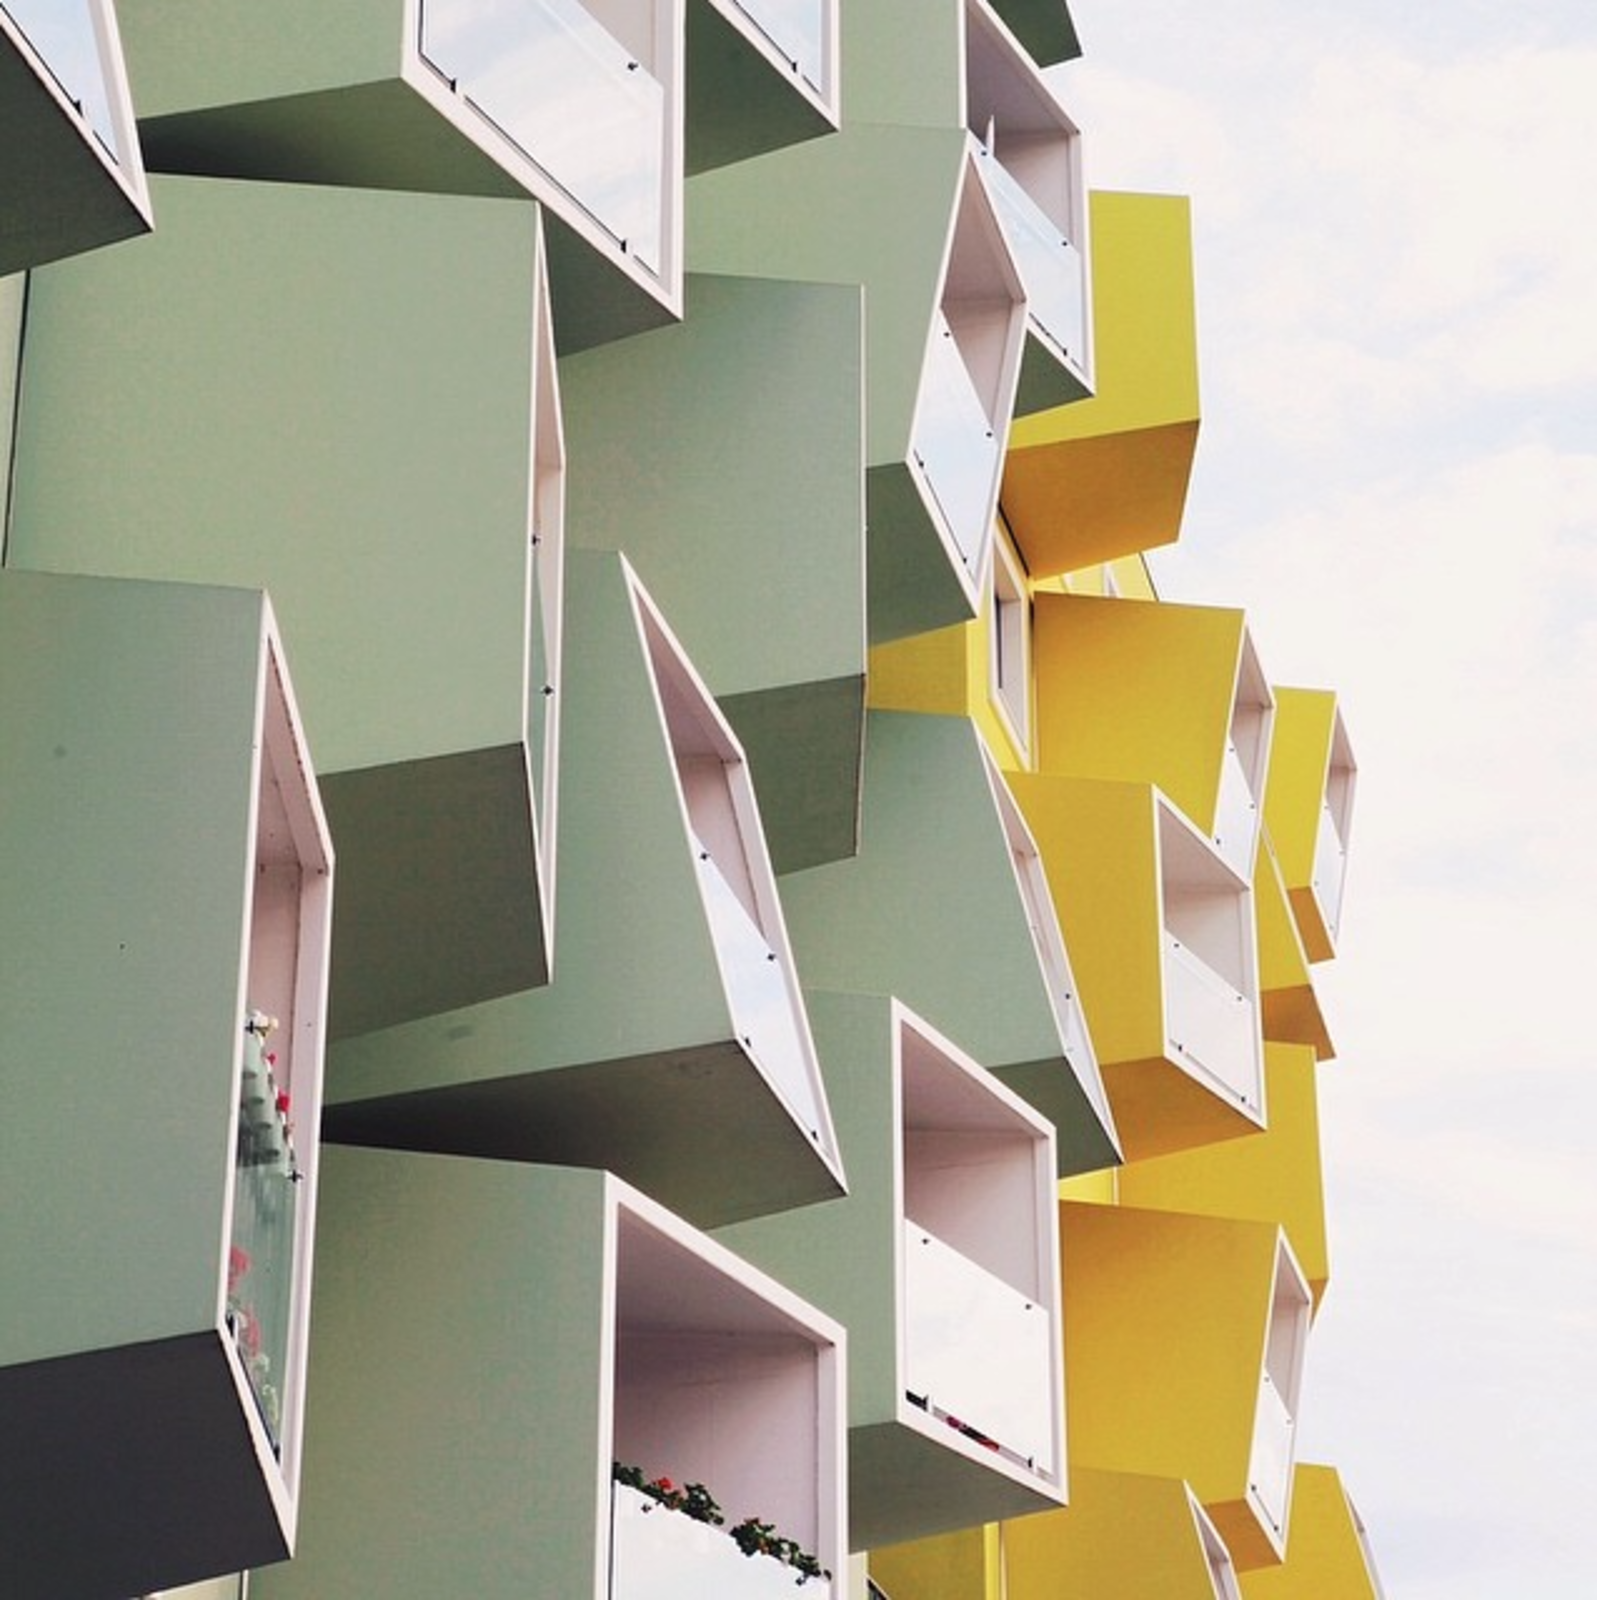 Apartment balconies in Copenhagen, Denmark.  Modern Danish Homes We Love from Instagram Account We Love: Colorful Architecture Snapshots of Cities